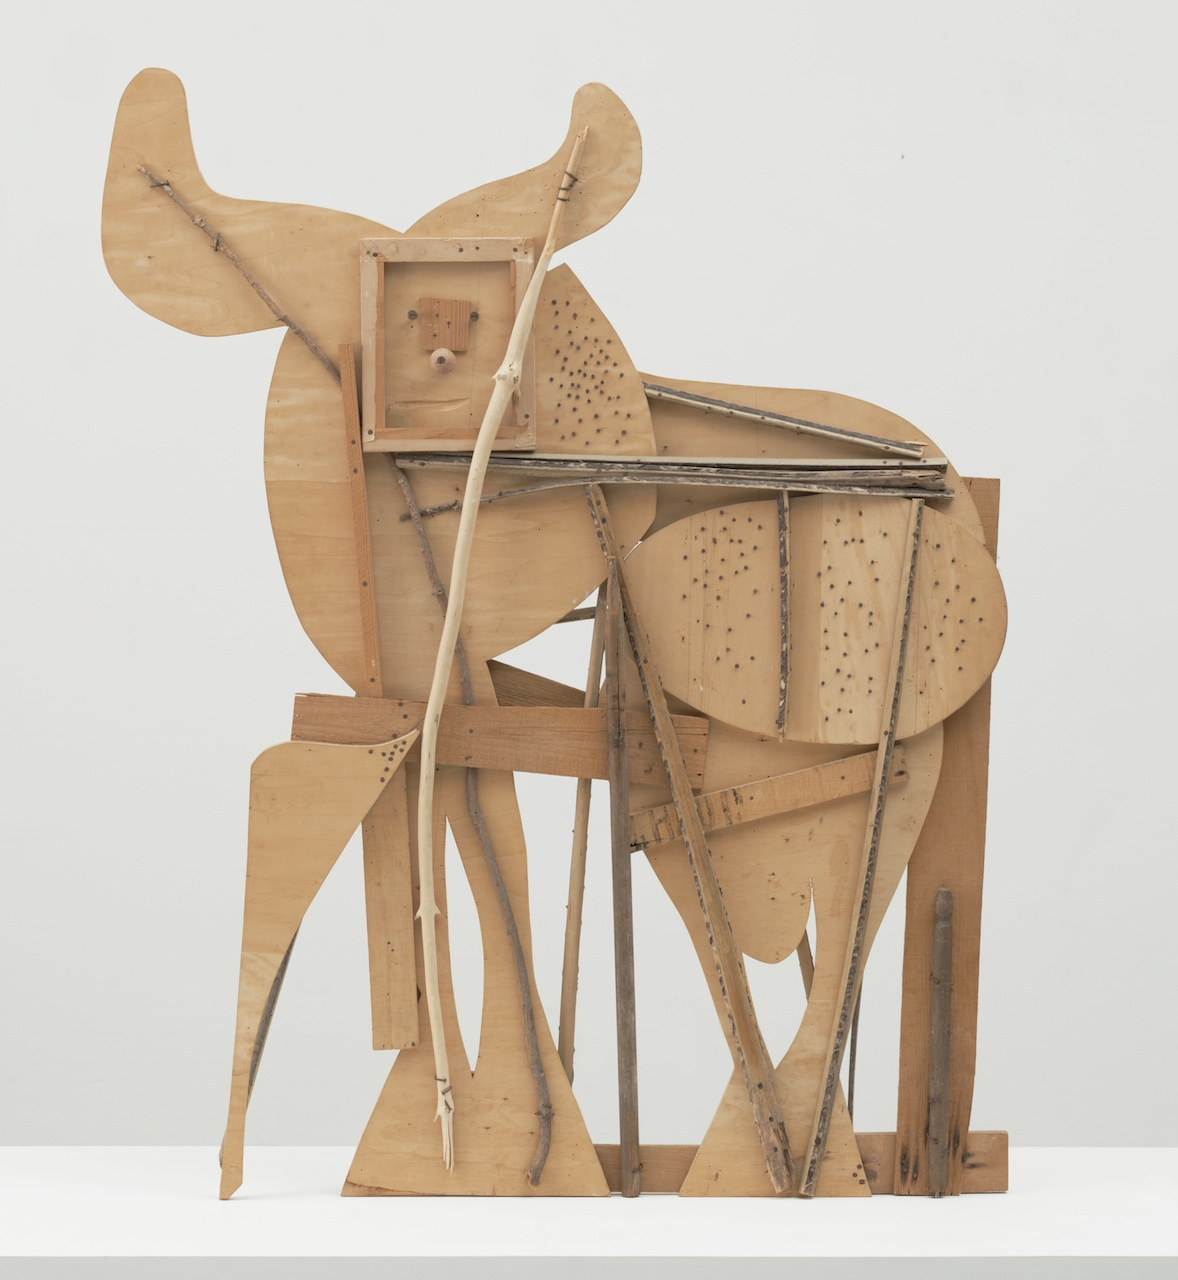 """Pablo Picasso, """"Bull"""" (1958, Cannes), plywood, tree branch, nails, and screws, 46 1/8 x 56 3/4 x 4 1/8 inches (courtesy the Museum of Modern Art, New York. Gift of Jacqueline Picasso, © 2015 Estate of Pablo Picasso / Artists Rights Society (ARS), New York)"""